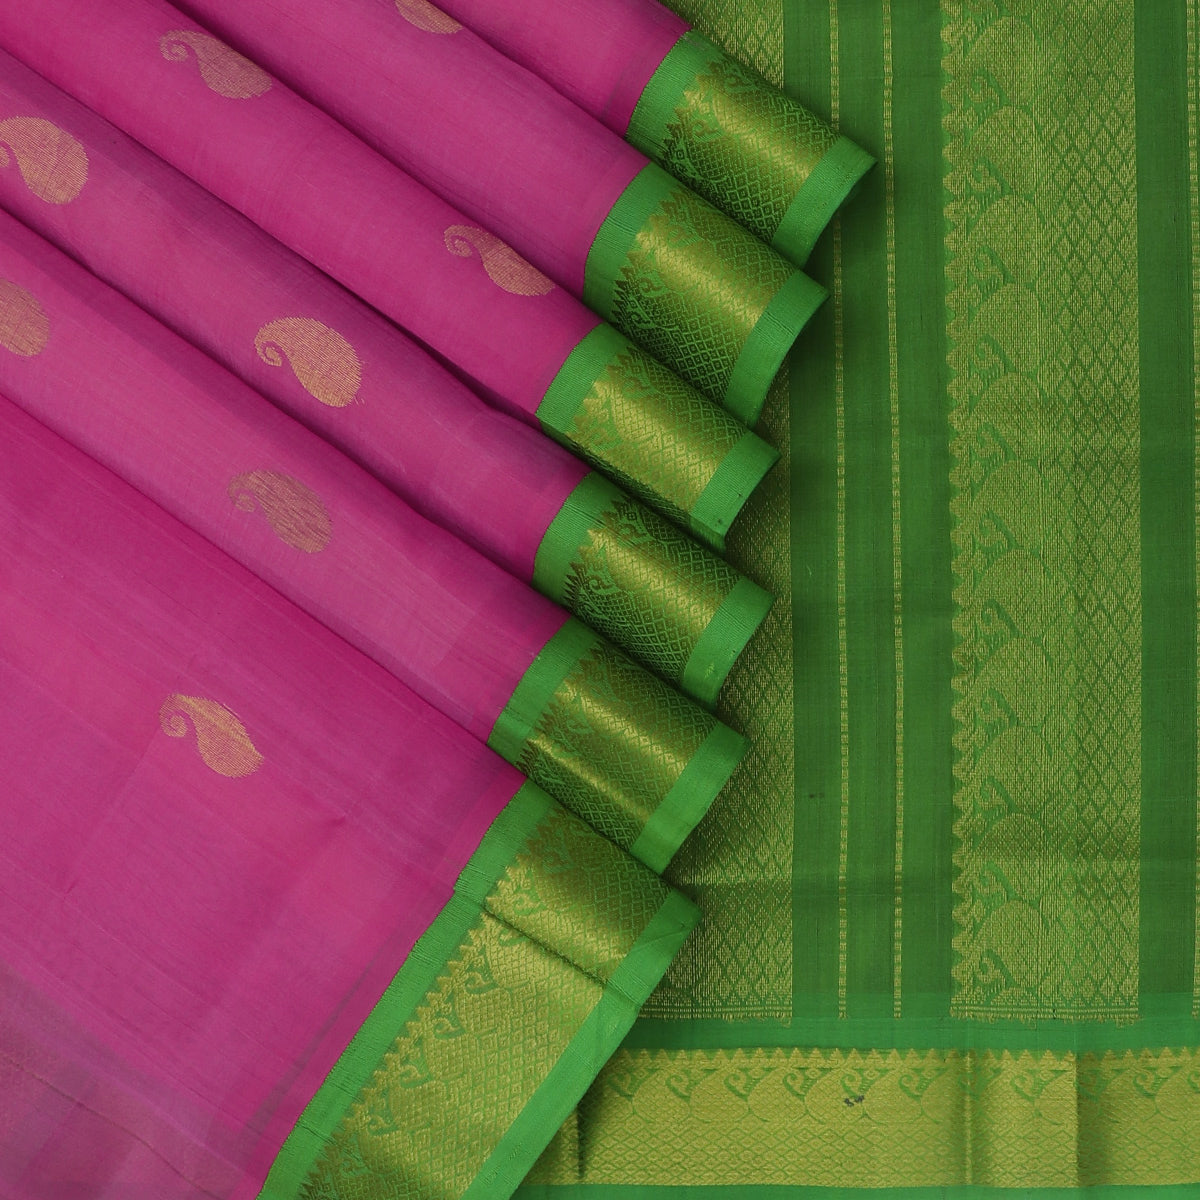 Silk Cotton Saree Pink with Buttas and Light Green with Mango Zari Border Korvai